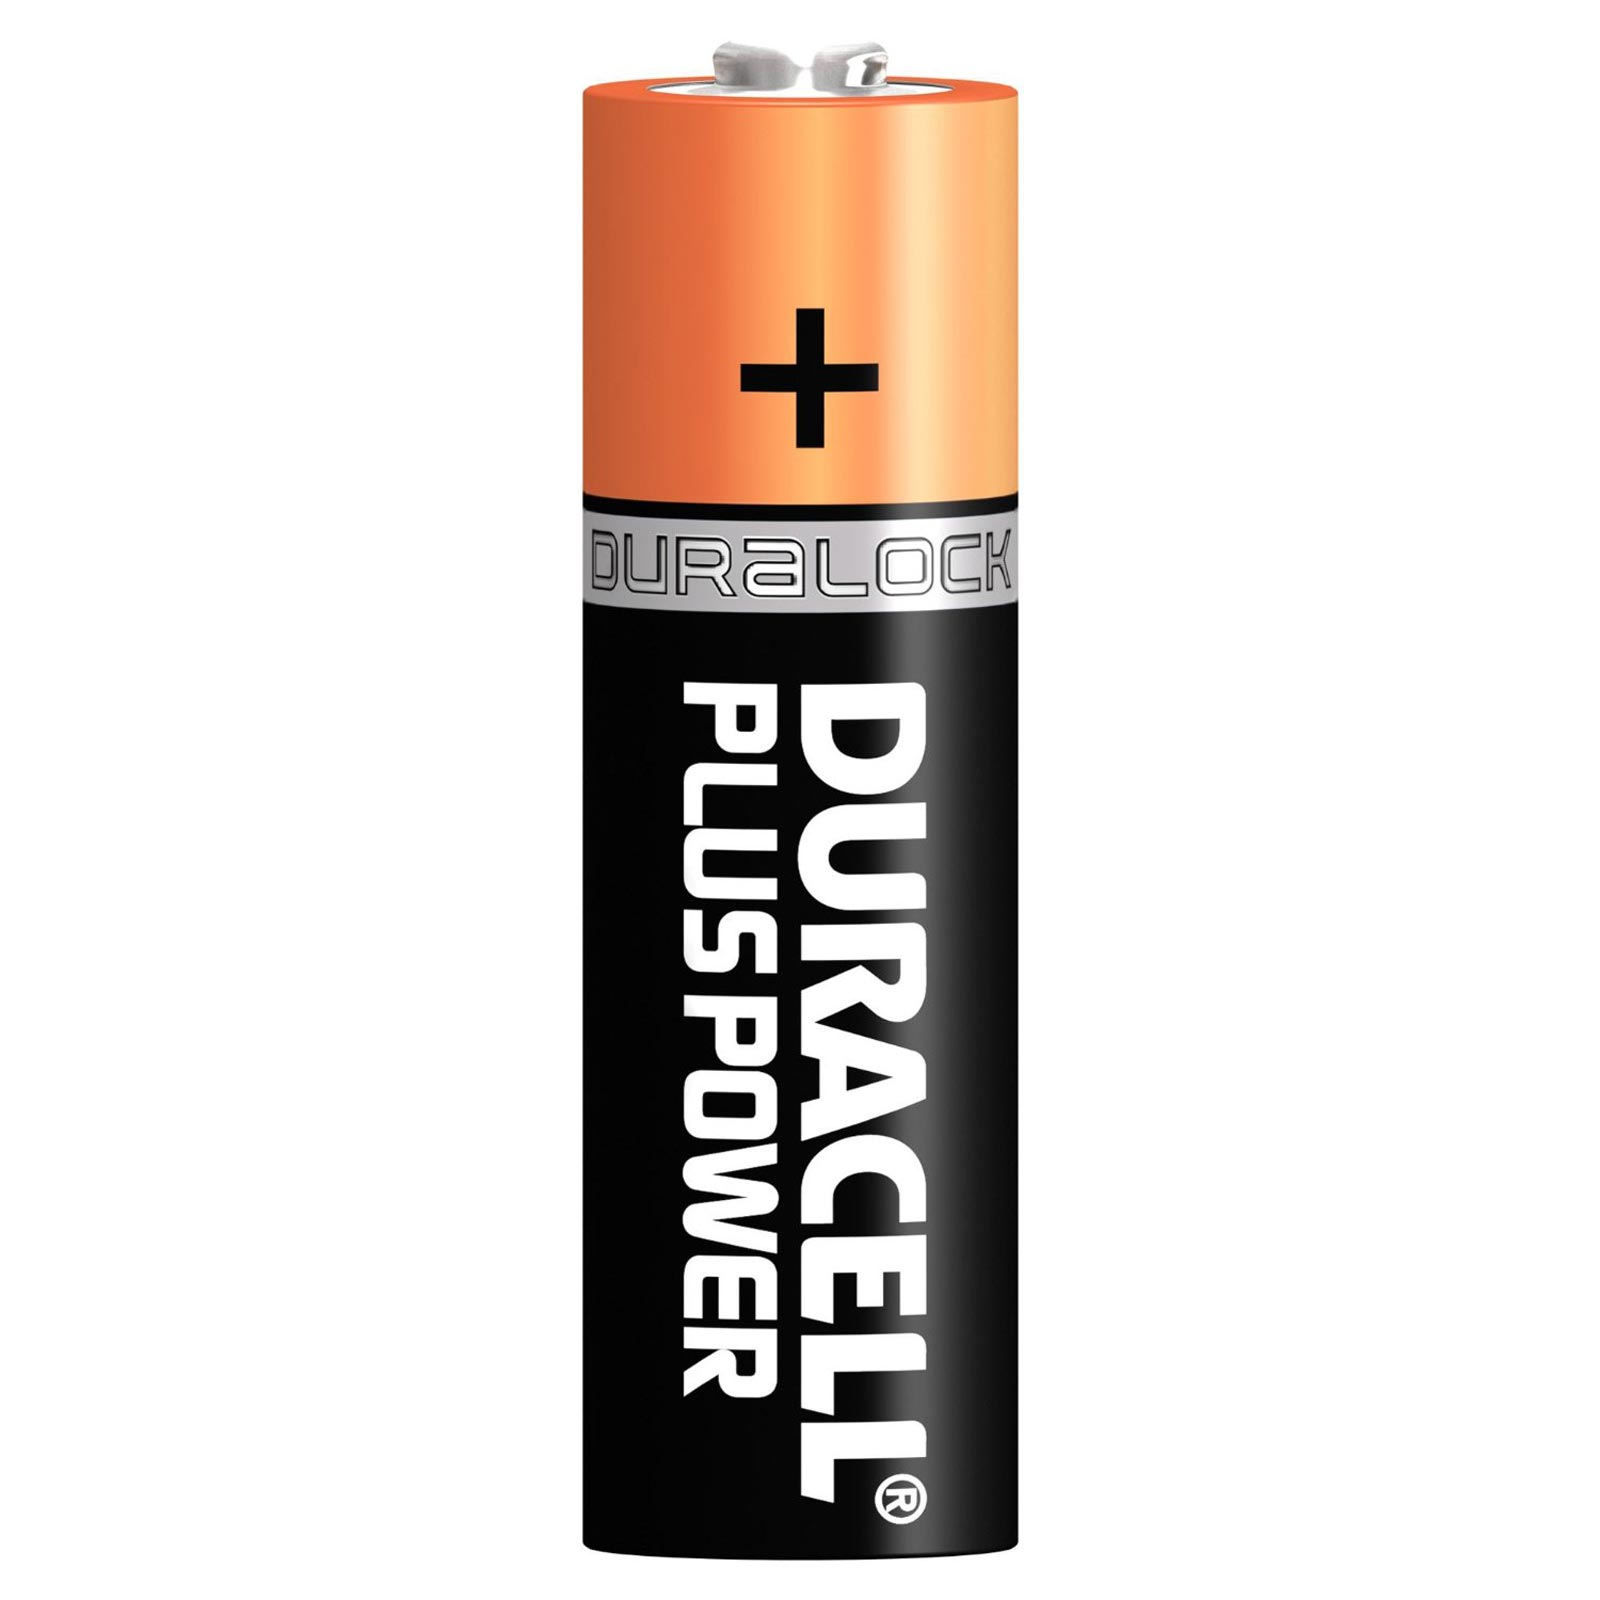 duracell coppertop aa alkaline 1 5v mn1500 lr6 bulk battery usa ship ebay. Black Bedroom Furniture Sets. Home Design Ideas